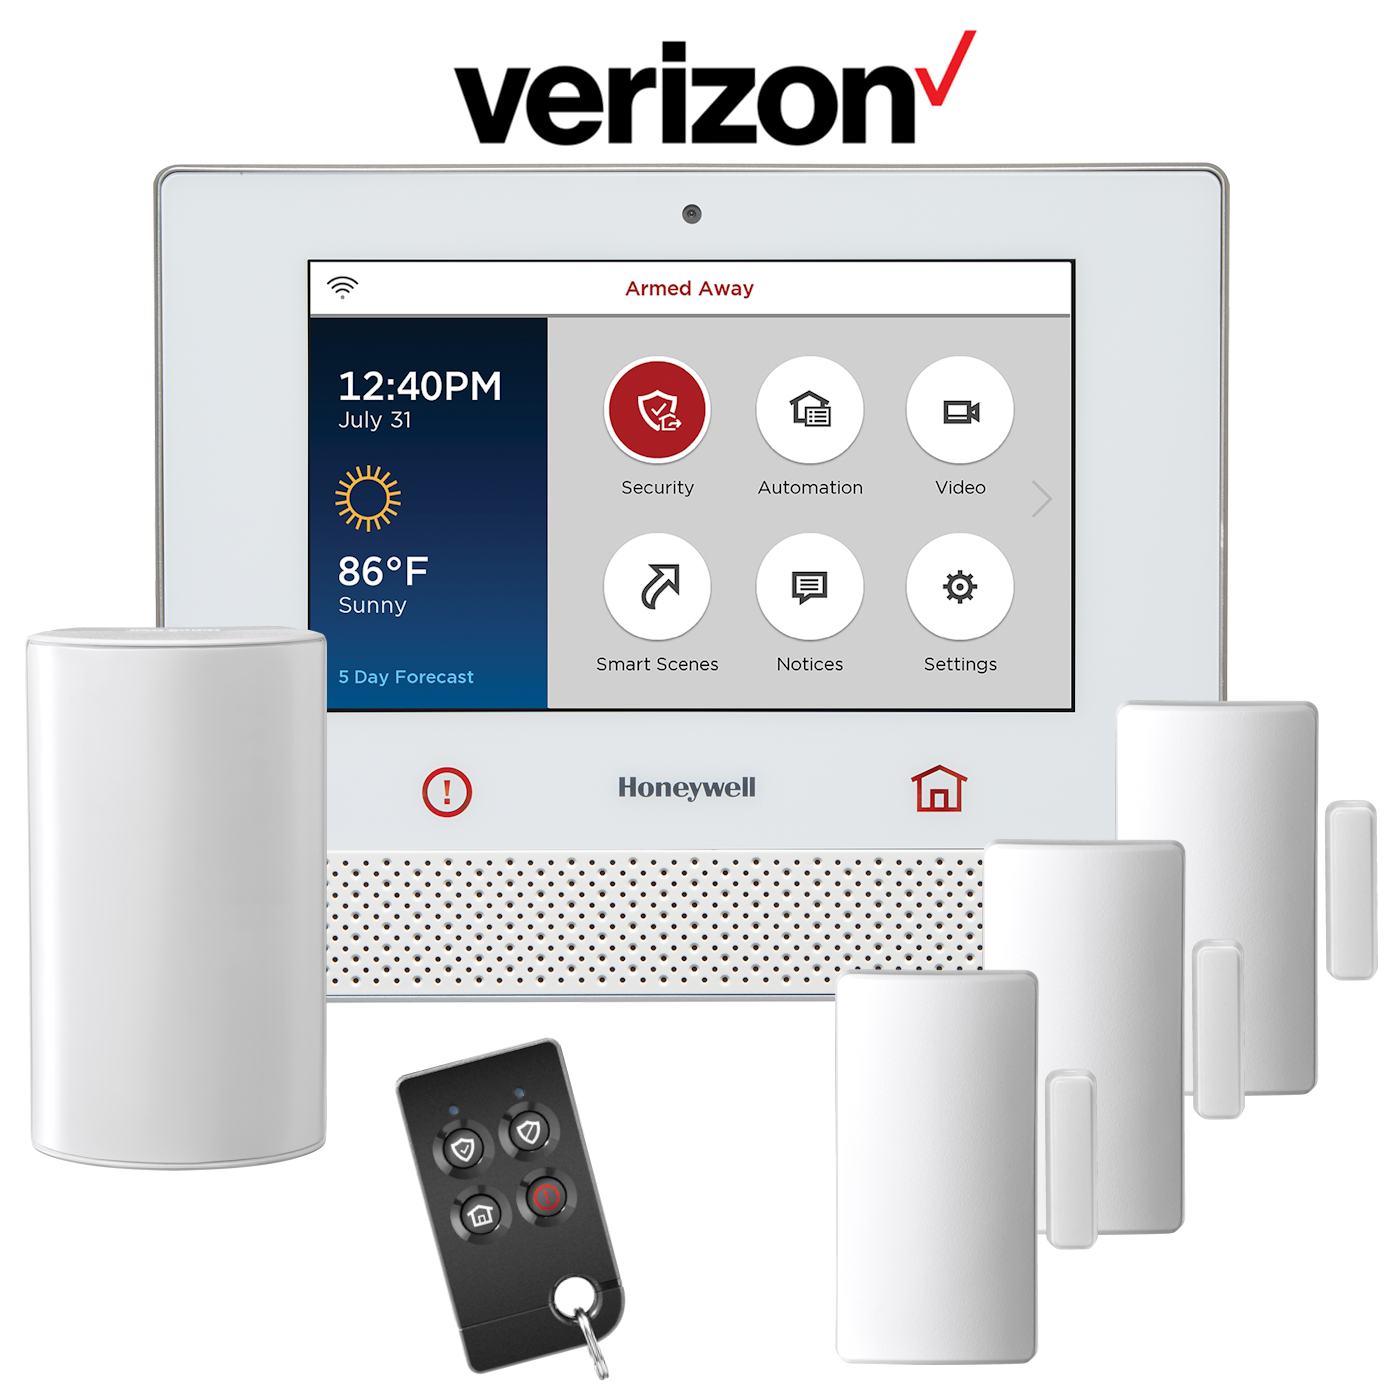 Home Security Systems Your Verizon Wireless Home Phone Connect may not be compatible with certain Home Security systems. Please check with your security system provider to confirm the compatibility requirements of your Home Security system. Other Incompatibilities Additional incompatibilities for the Home Phone Connect device include.